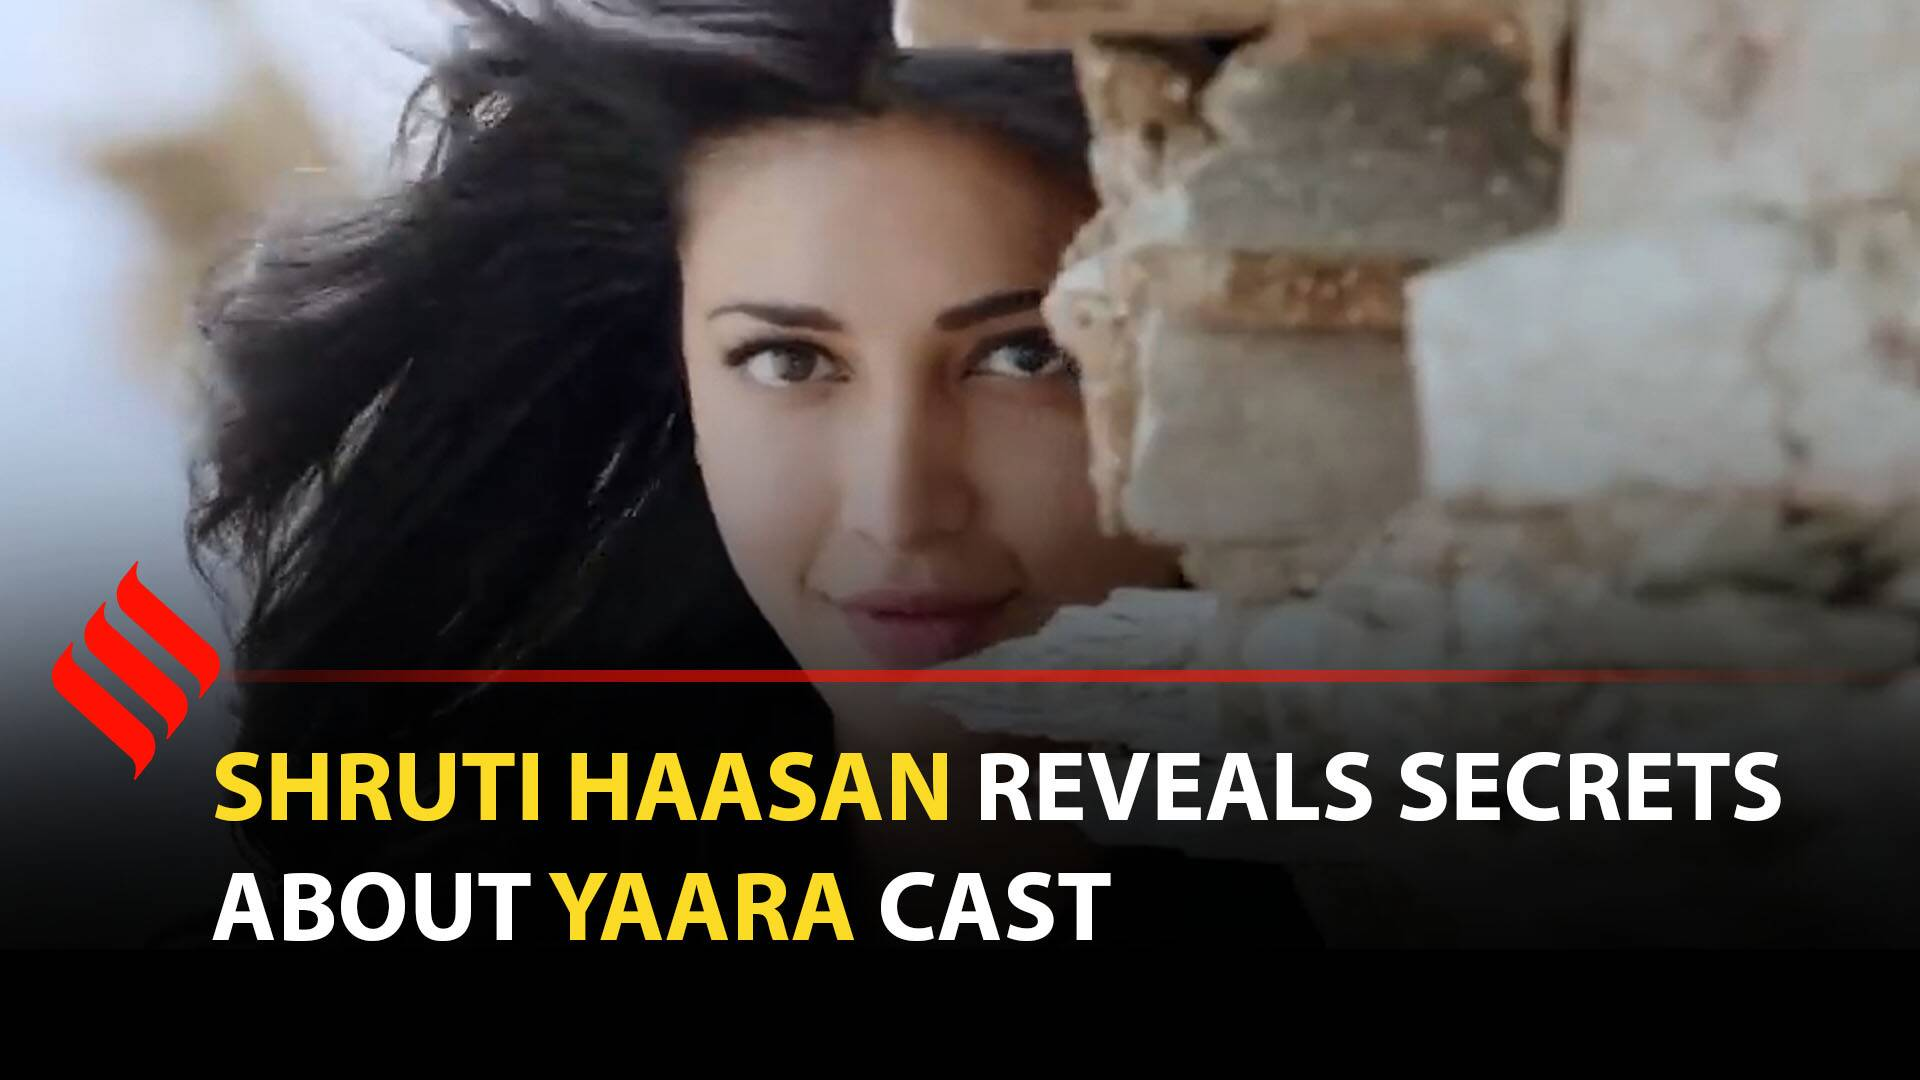 Shruti Haasan reveals secrets about Yaara cast